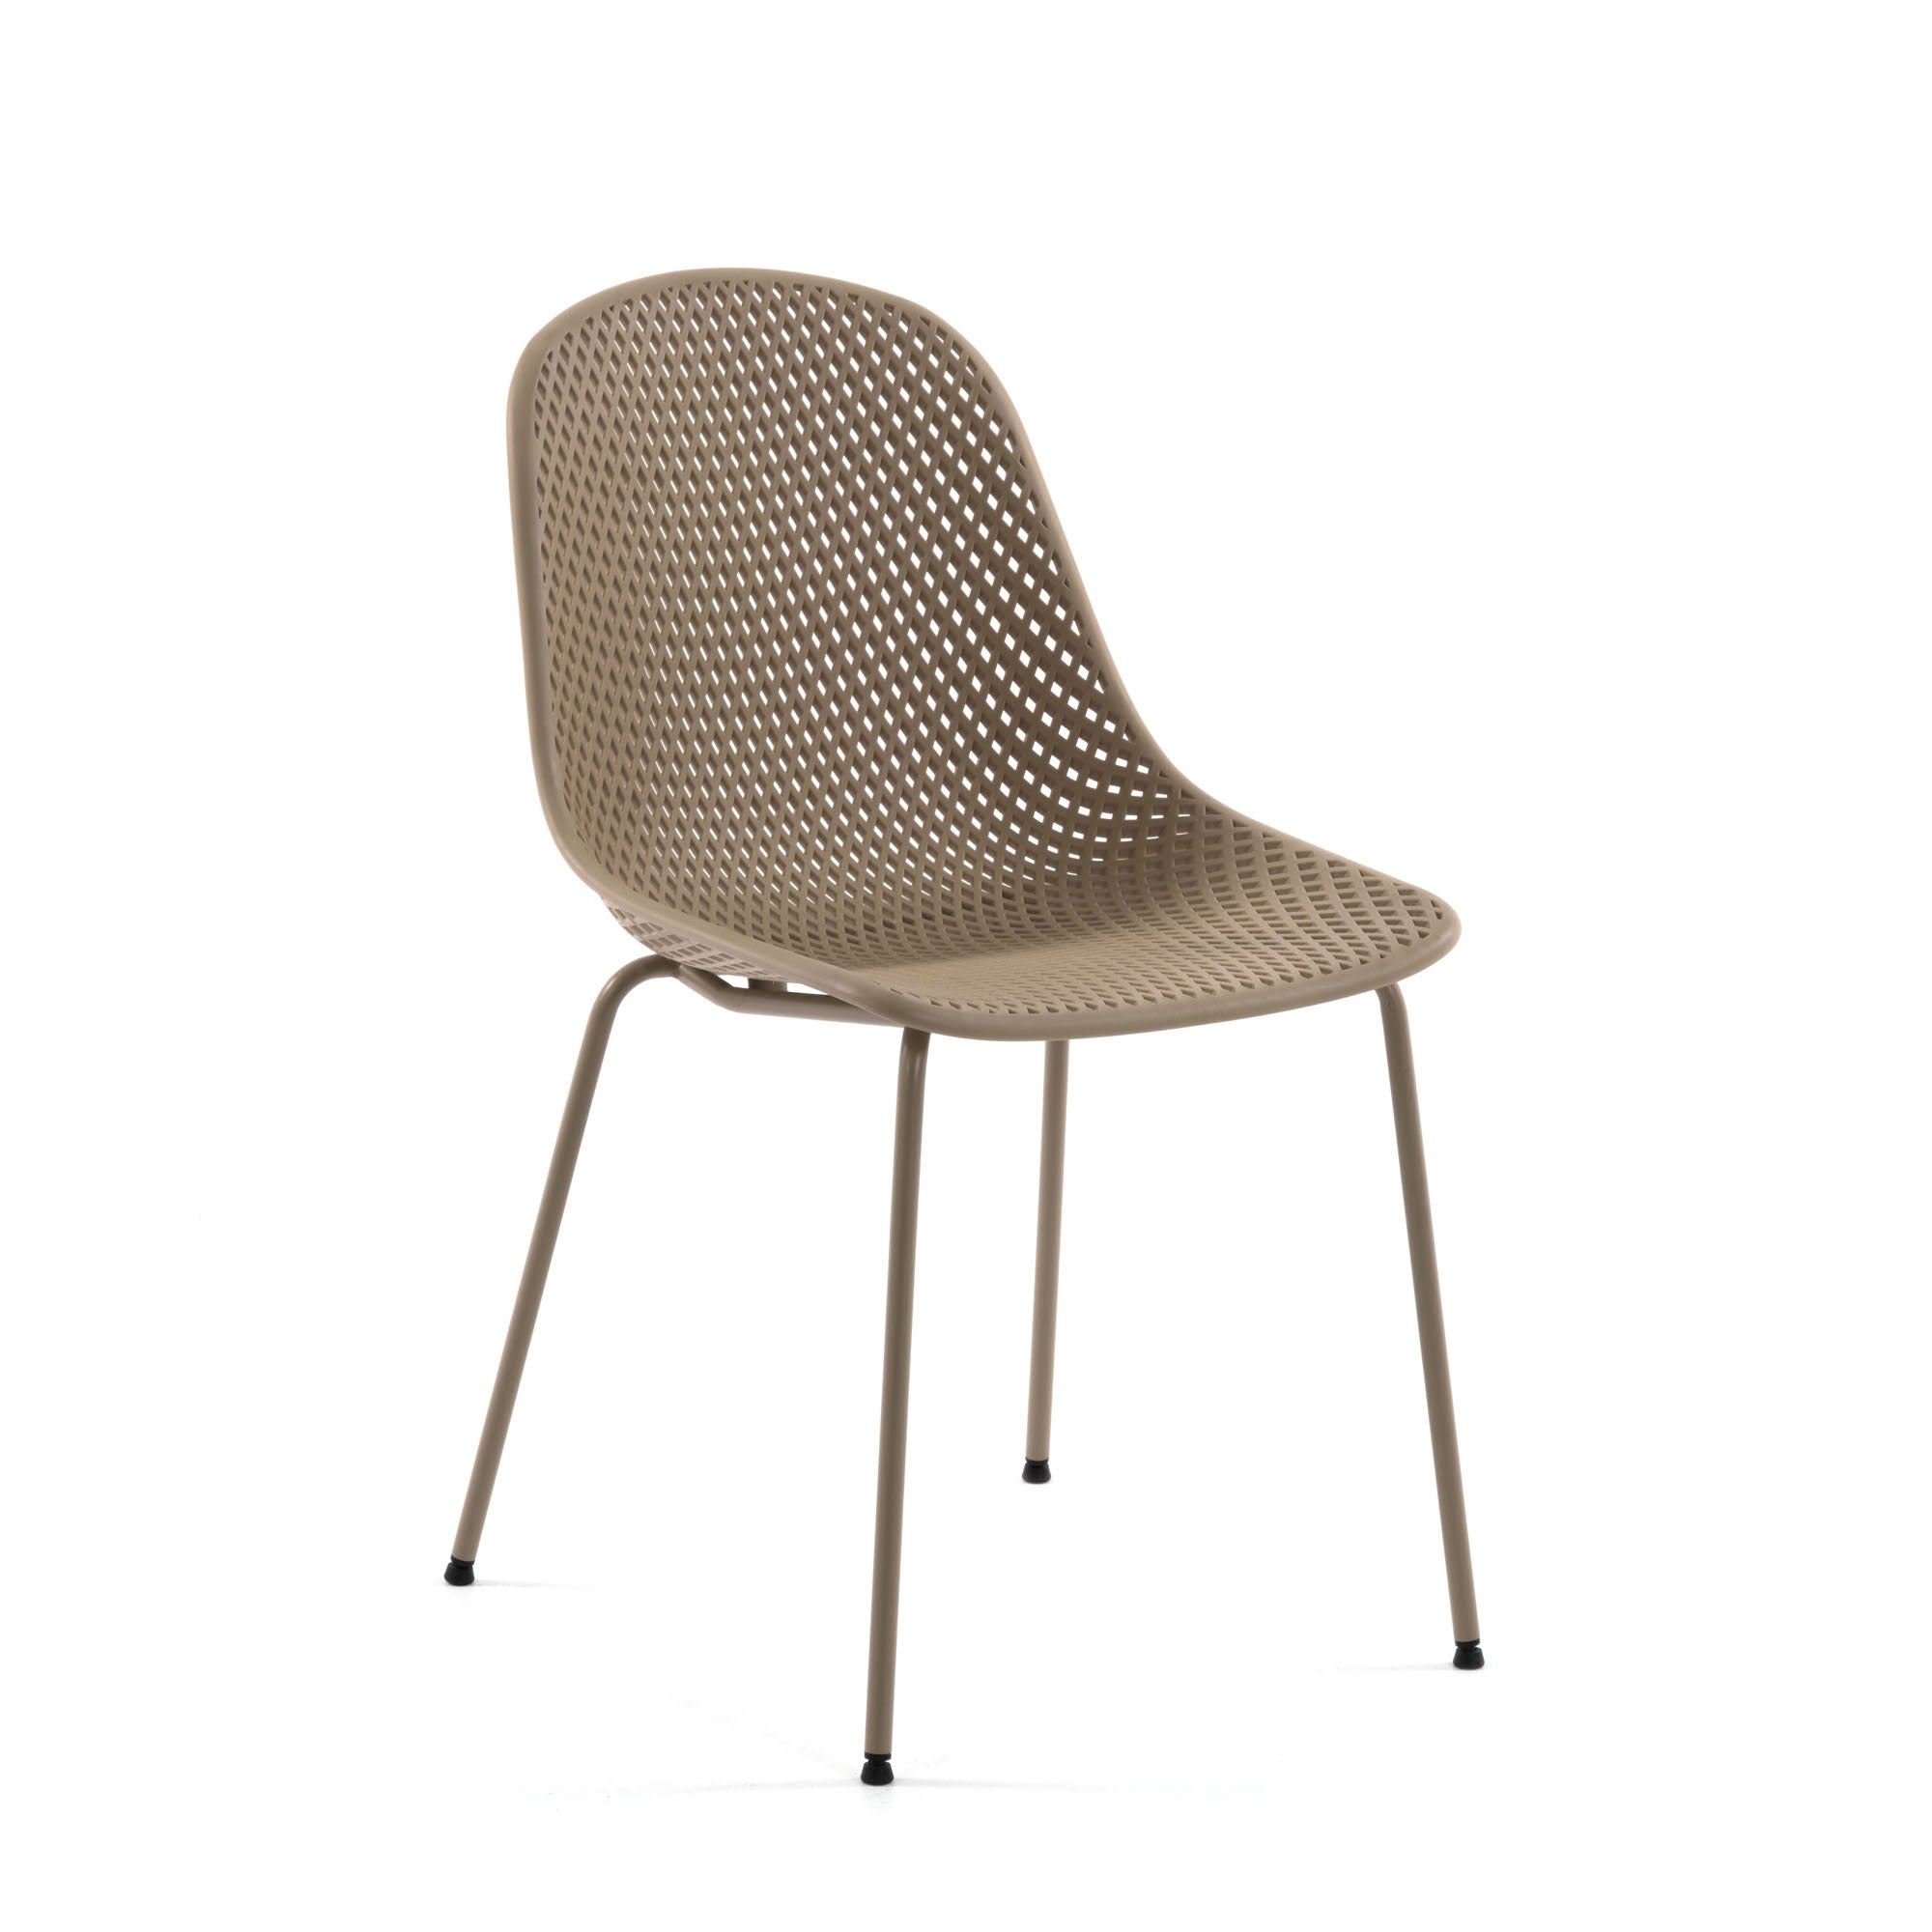 Luino Outdoor Beige Chair, Chair - Home-Buy Interiors